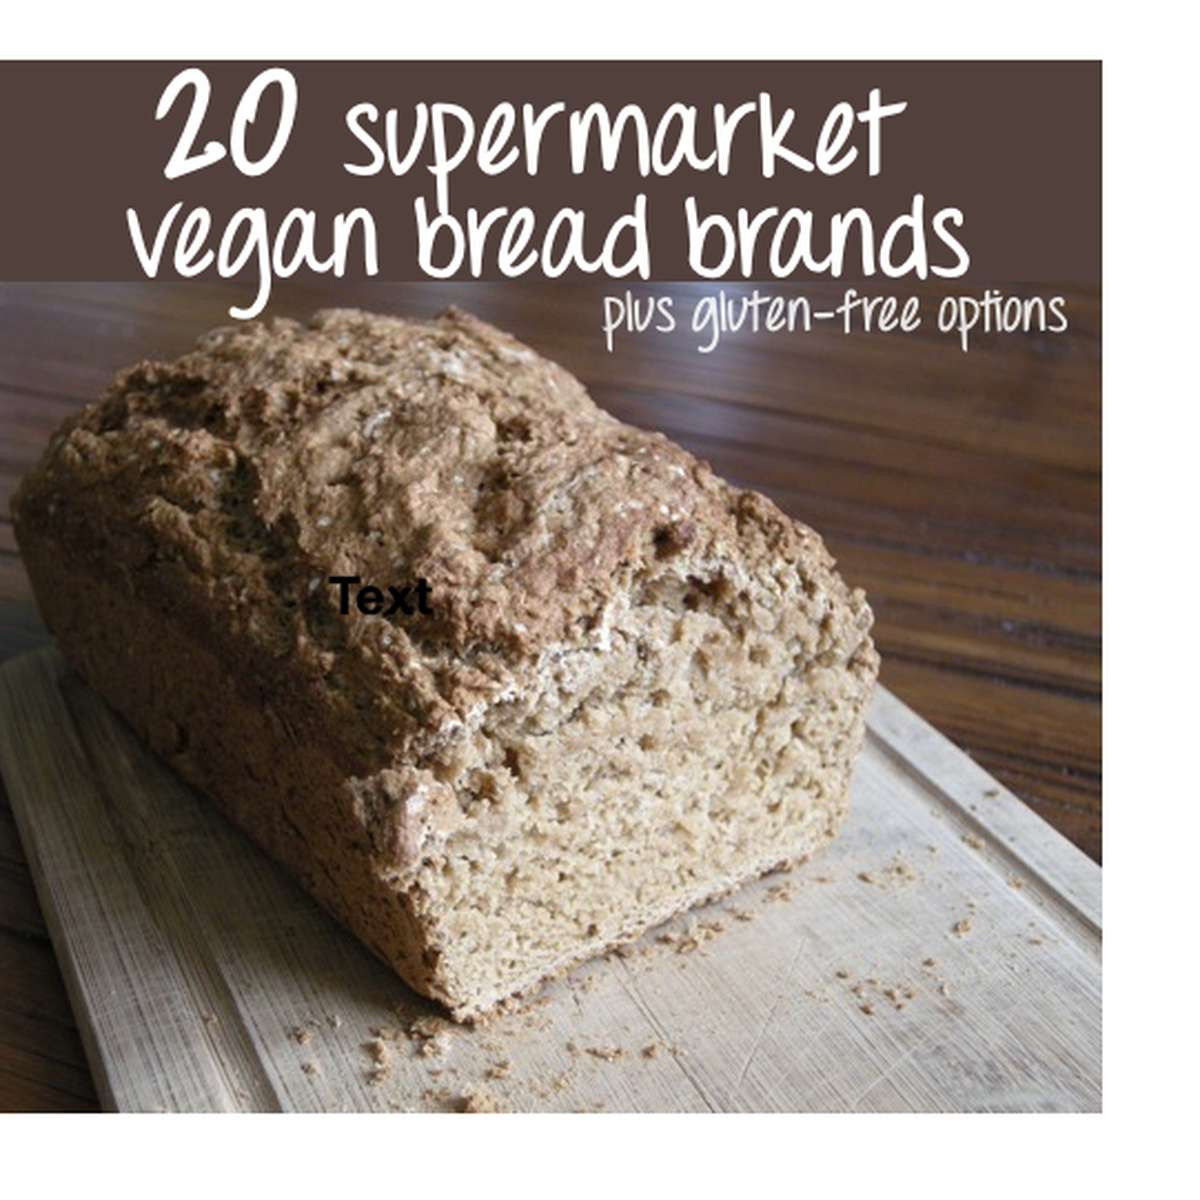 Gluten Free Vegan Bread Brands  List of 20 Supermarket Friendly Vegan Bread Brands inc